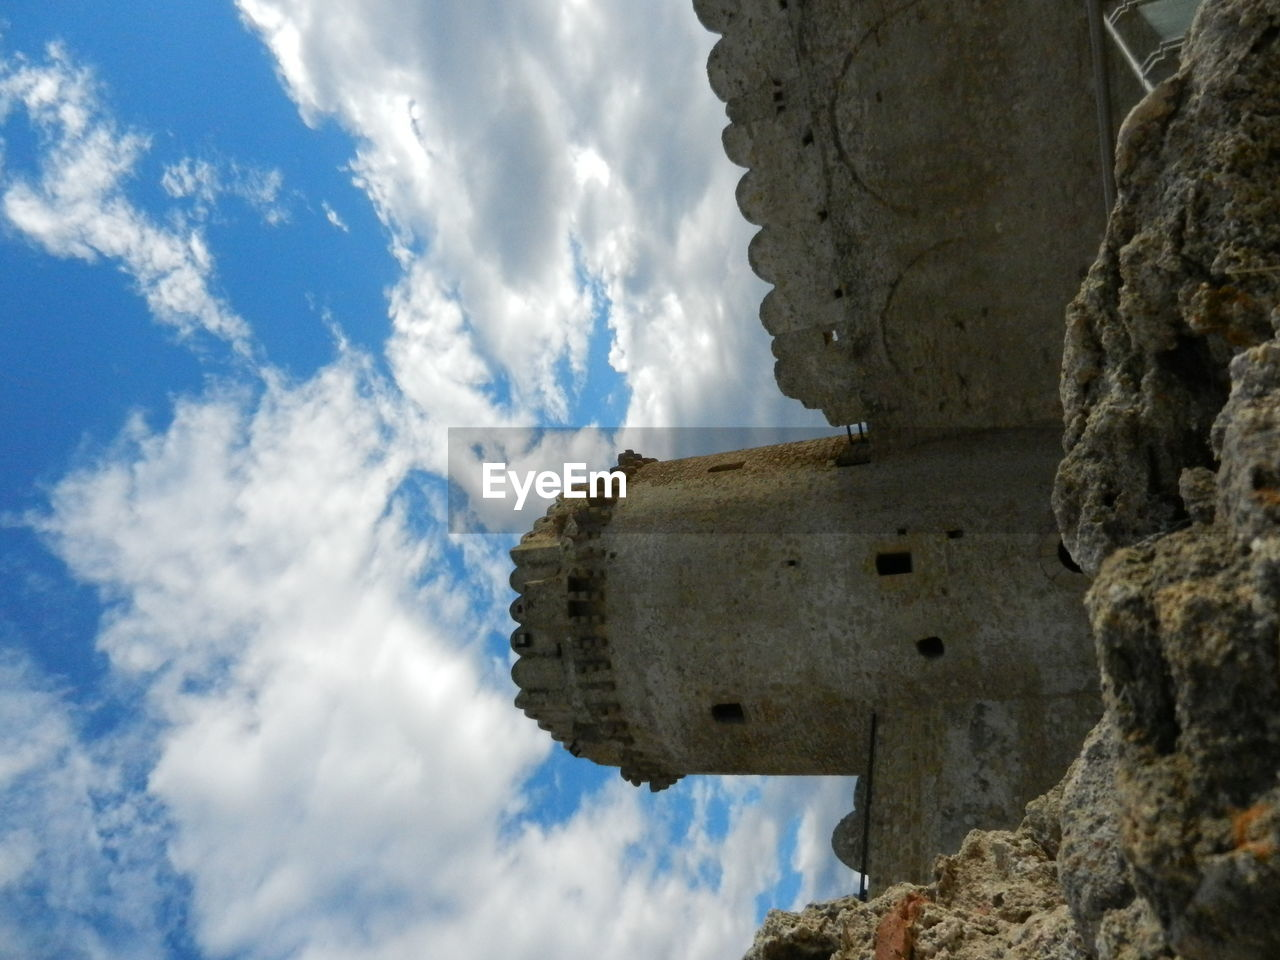 cloud - sky, history, sky, religion, the past, ancient, spirituality, day, old ruin, low angle view, architecture, place of worship, statue, built structure, no people, sculpture, ancient civilization, travel destinations, outdoors, memorial, building exterior, nature, beauty in nature, close-up